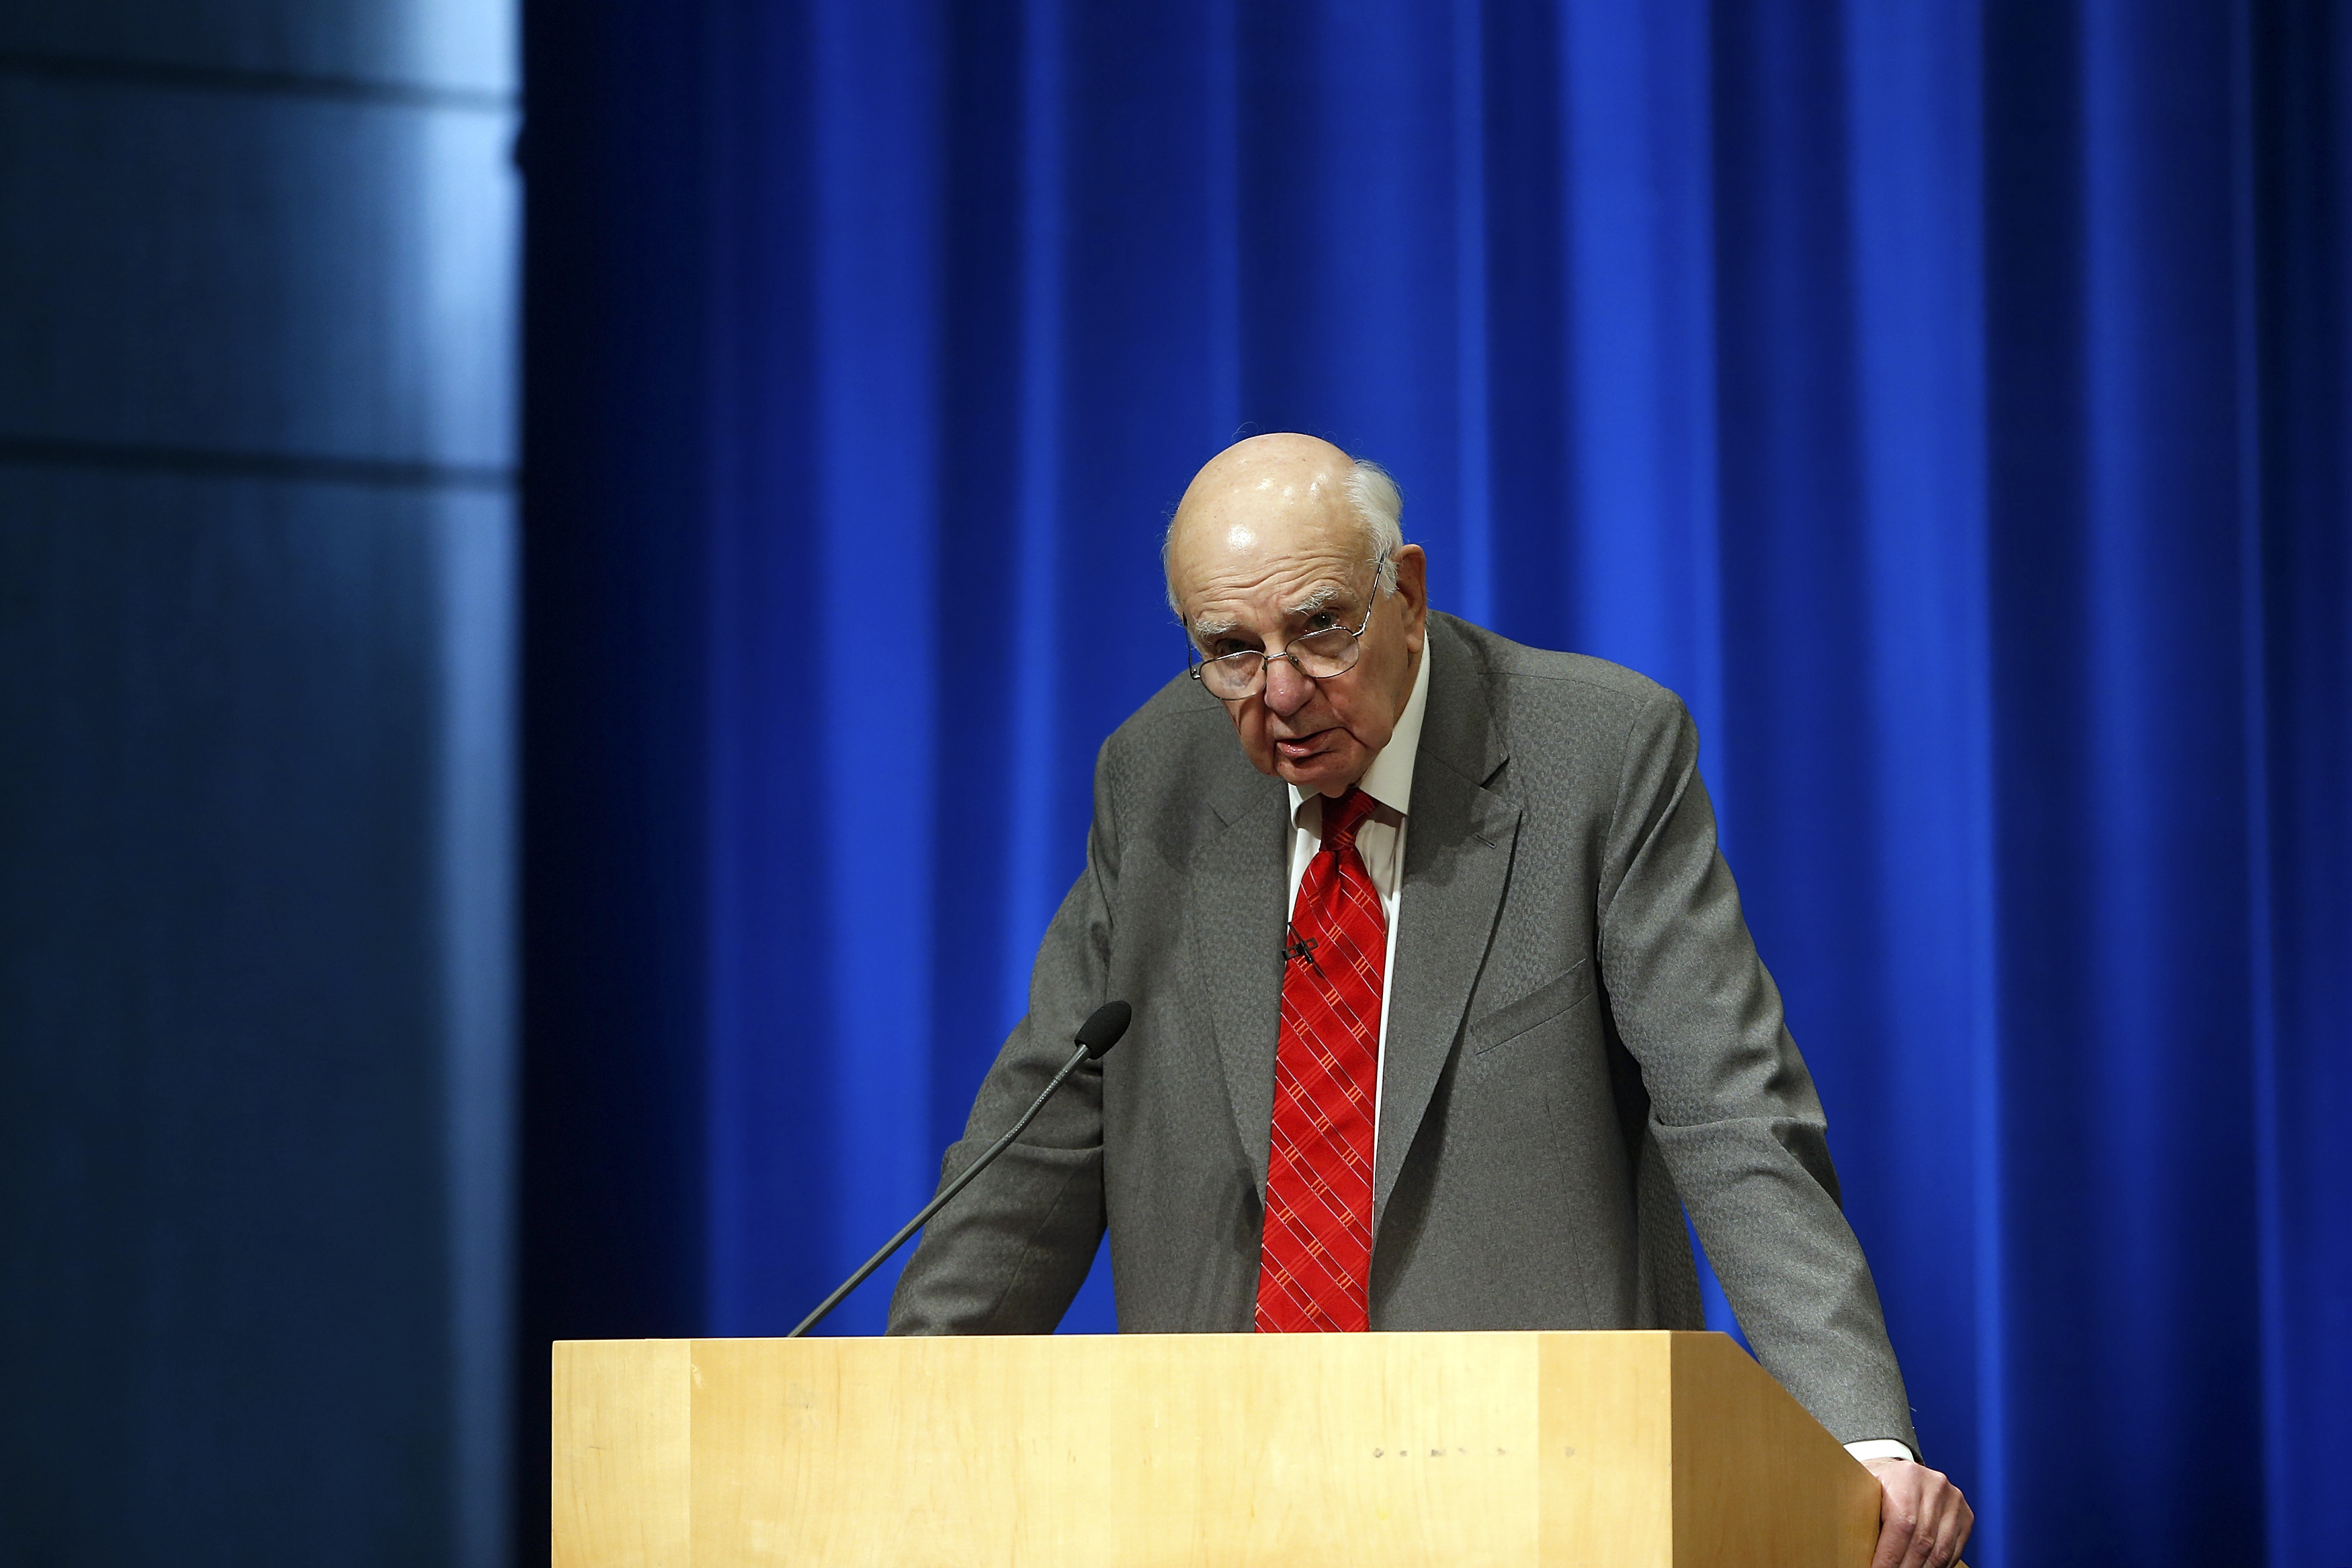 They don't make central bankers like Paul Volcker anymore